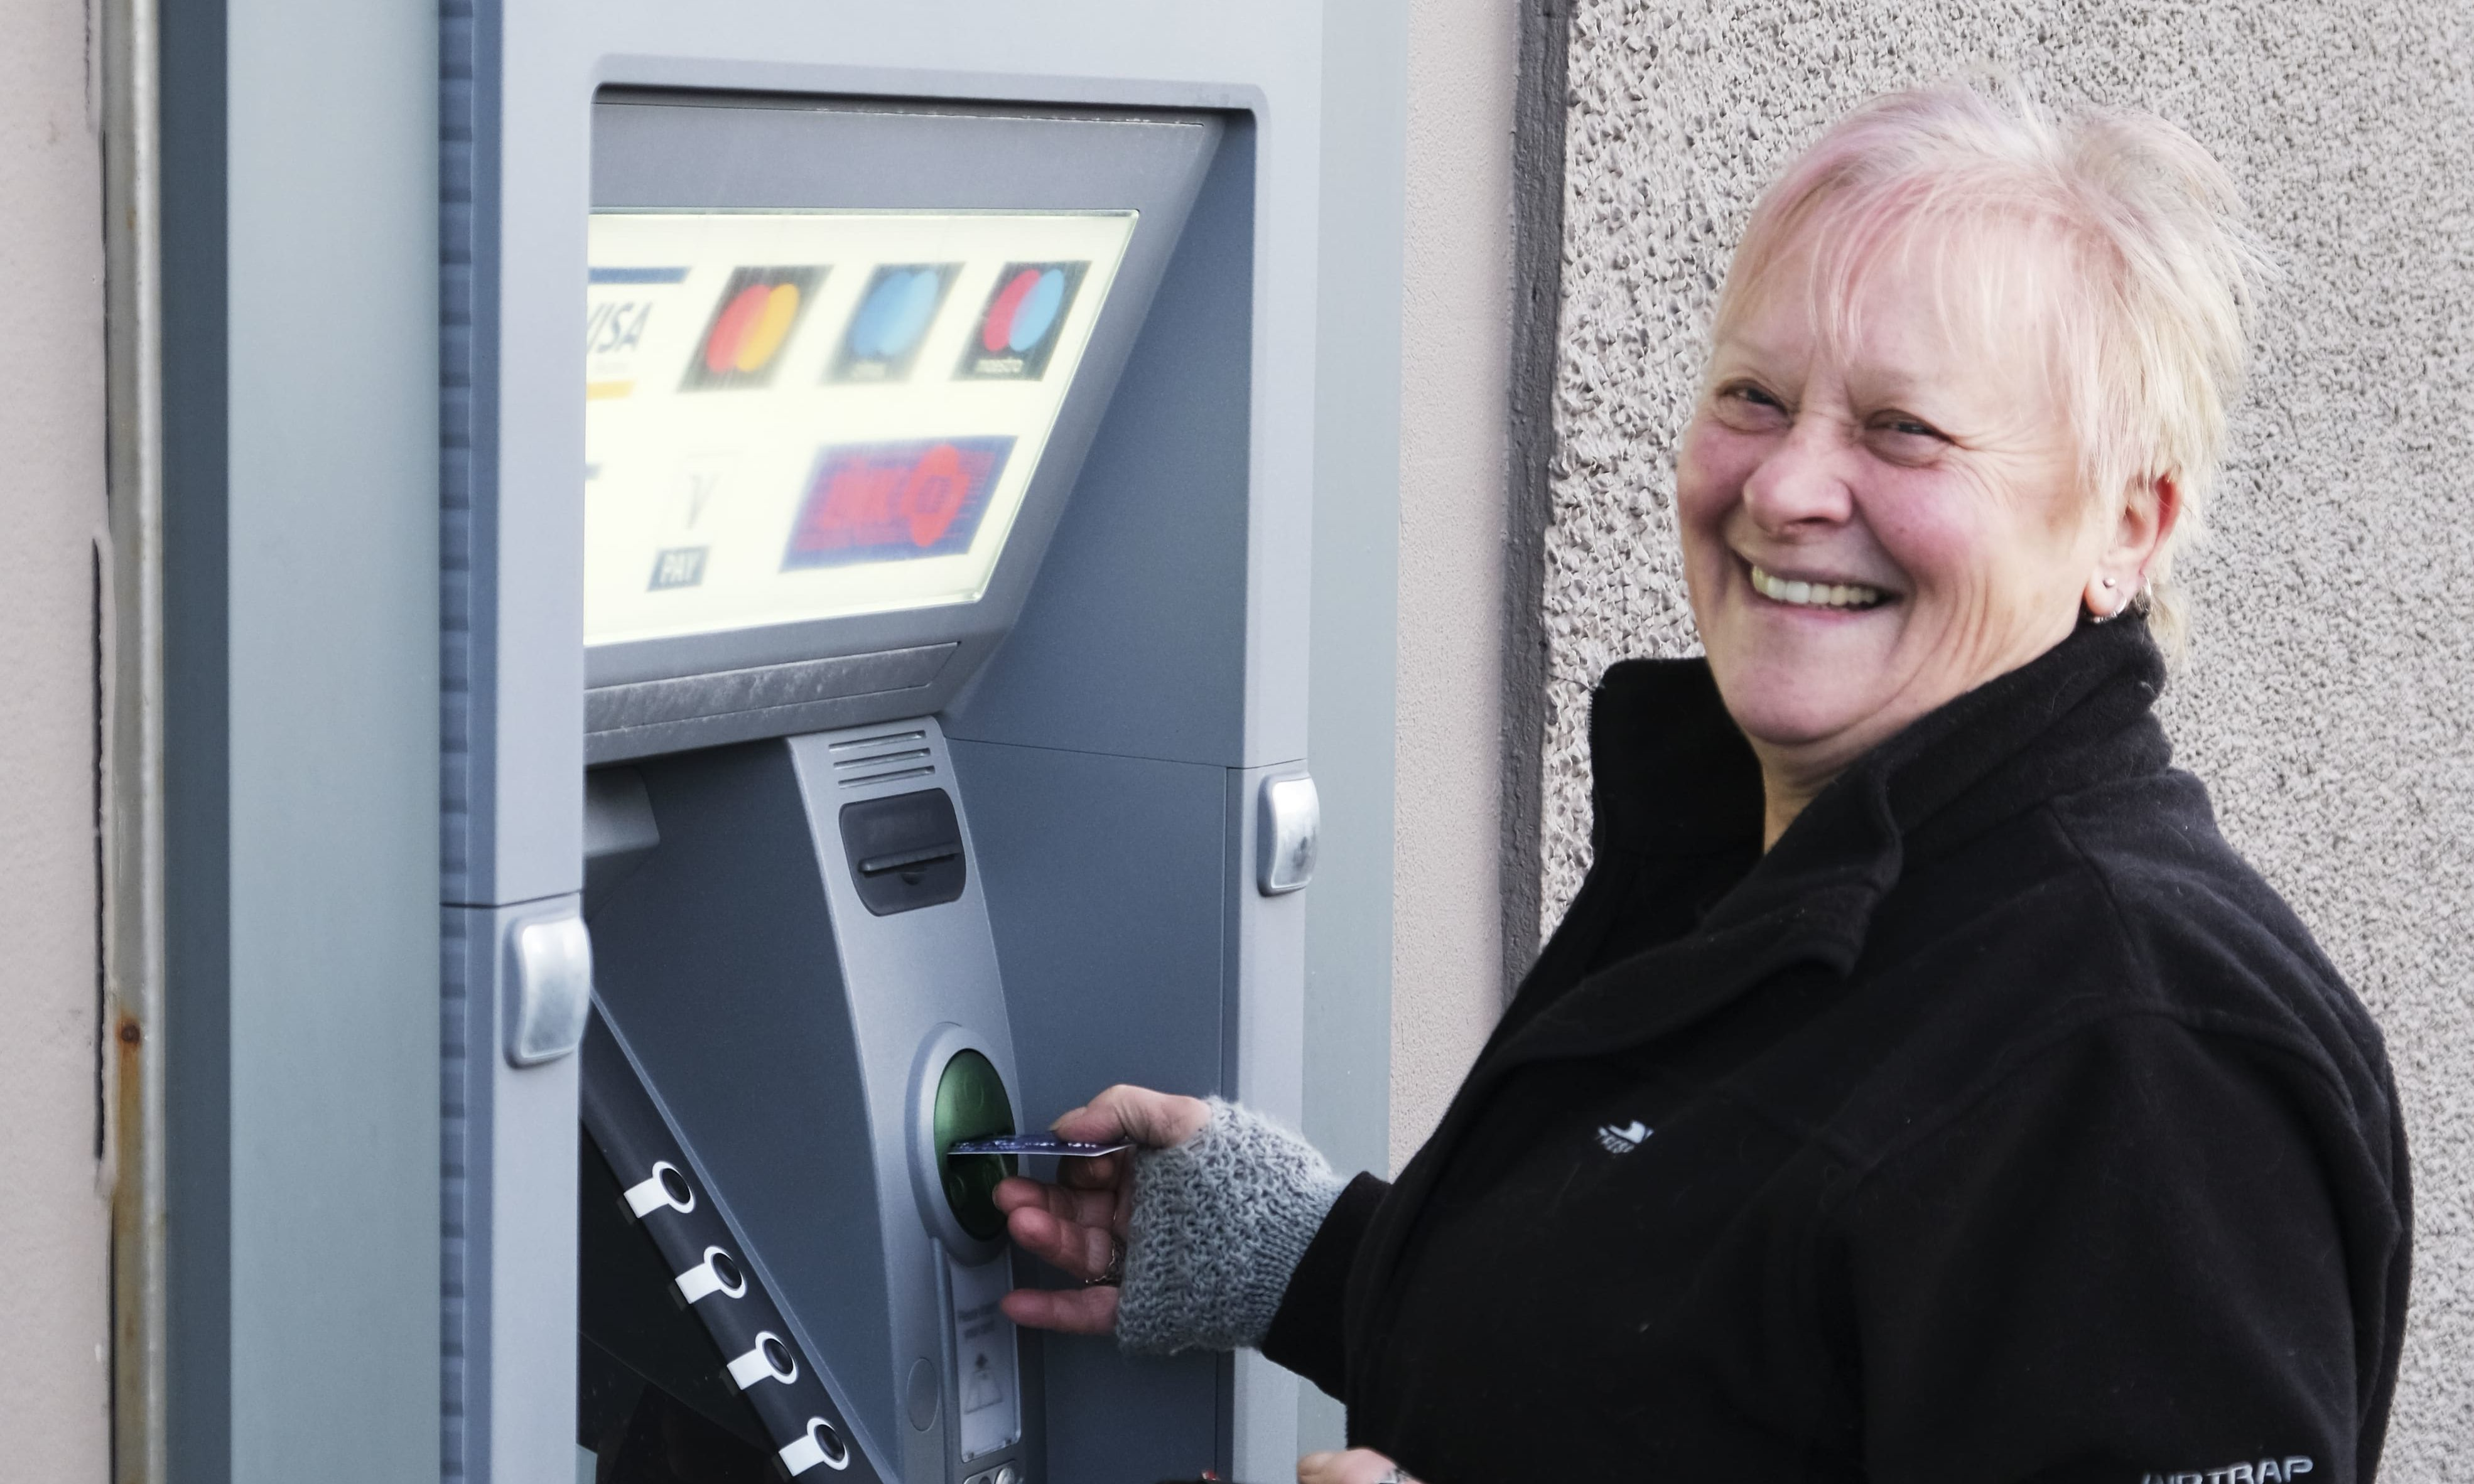 Local residents have been delighted to see the re-introduction of a dedicated 24-hour cash service in Durness